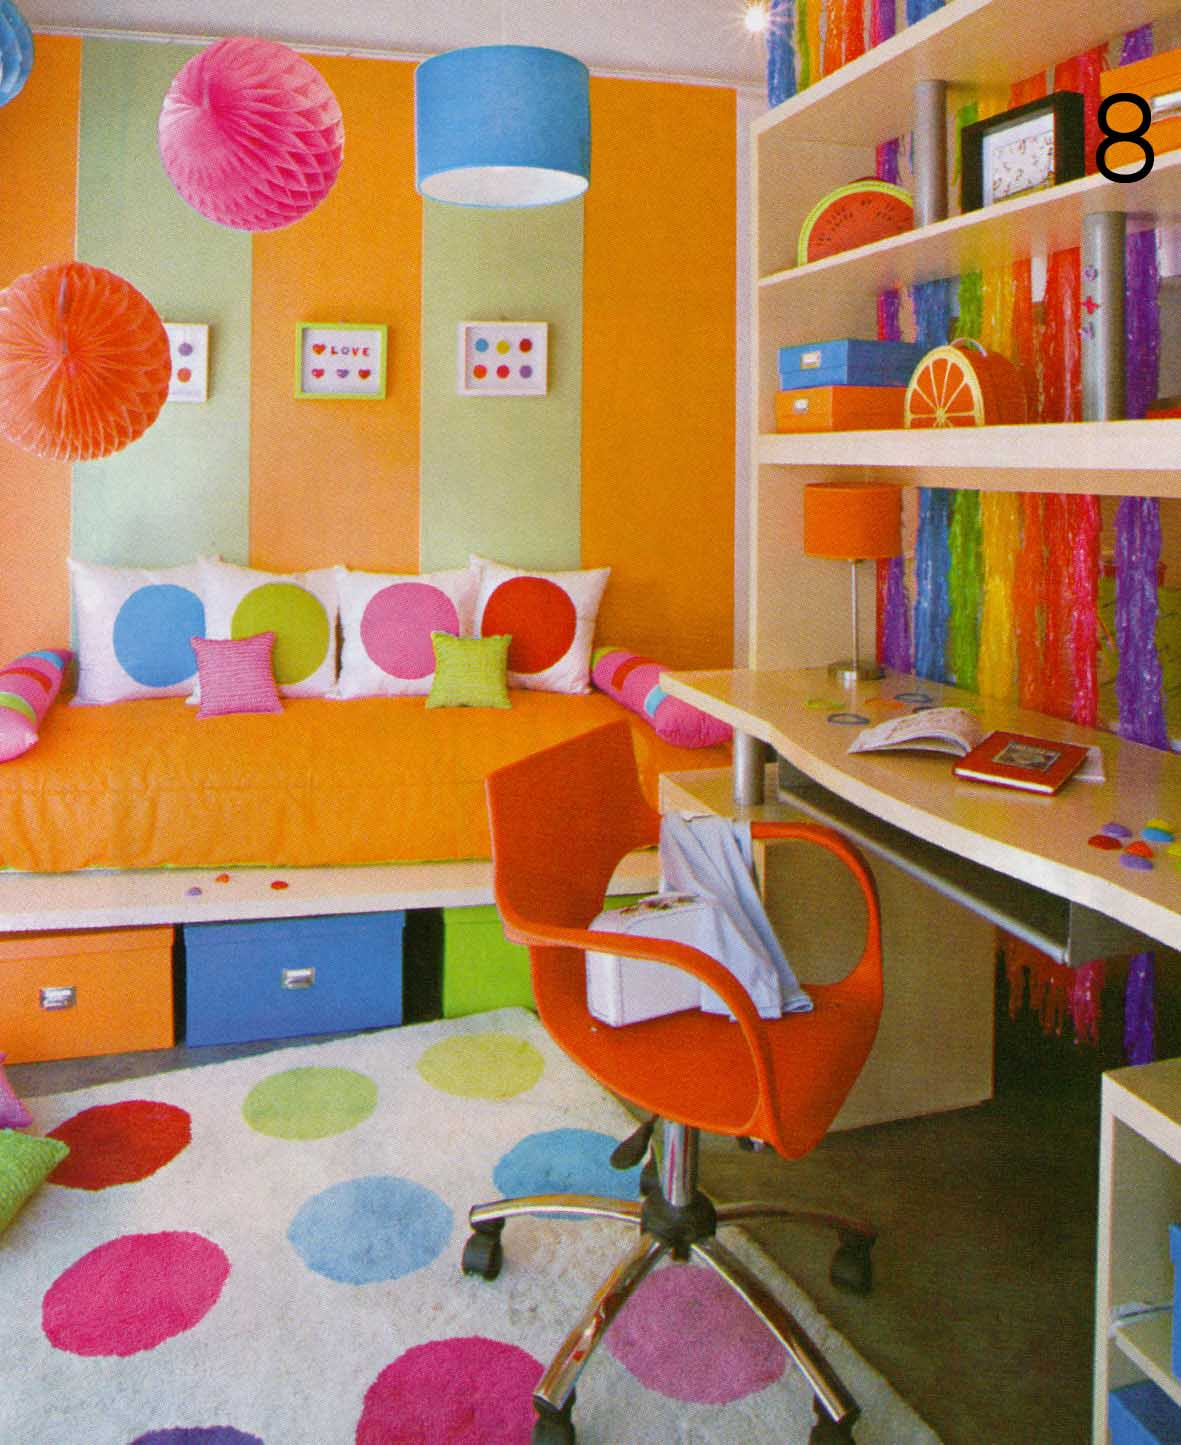 Homedecor decoraci n de dormitorios infantiles for Decoracion cuartos infantiles